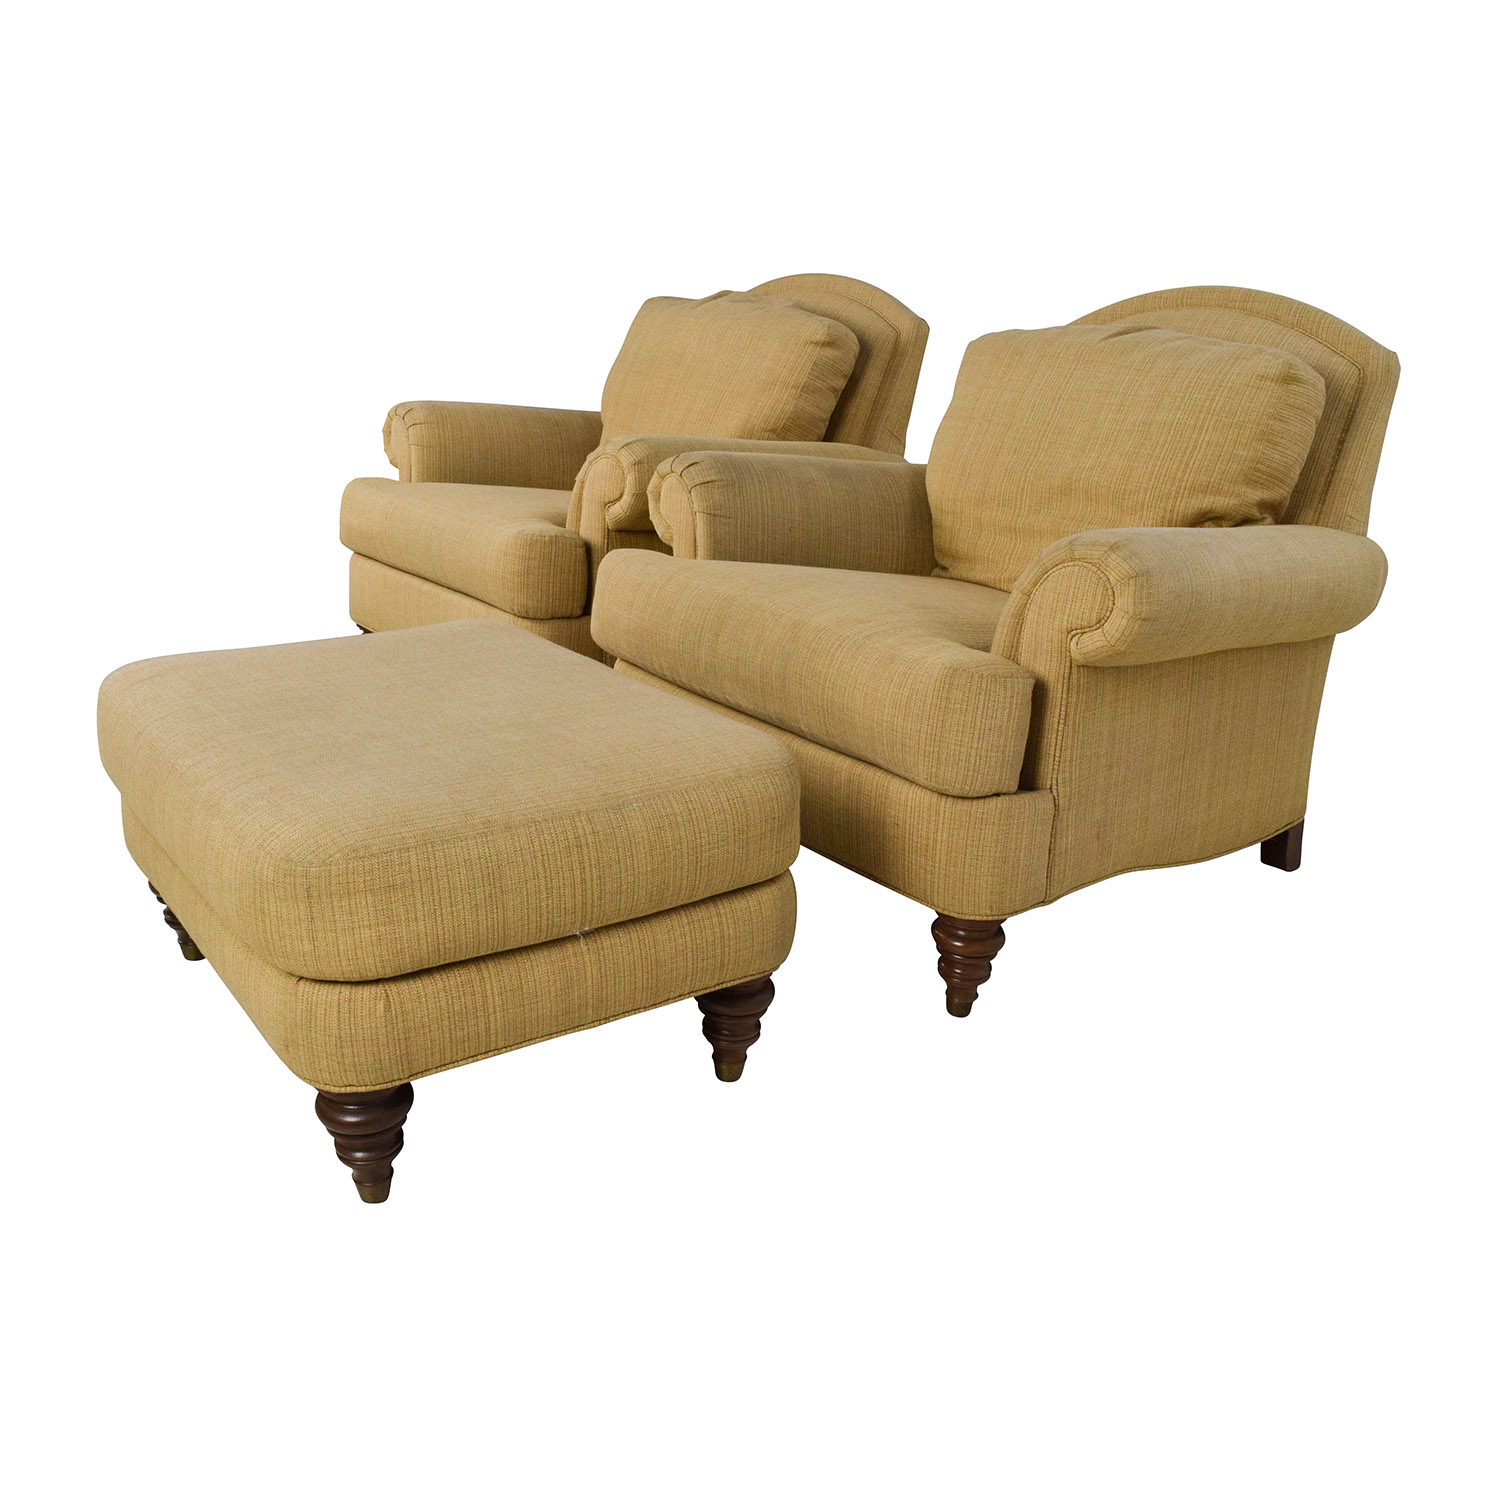 Overstuffed Chair And A Half Overstuffed Chairs And Ottomans